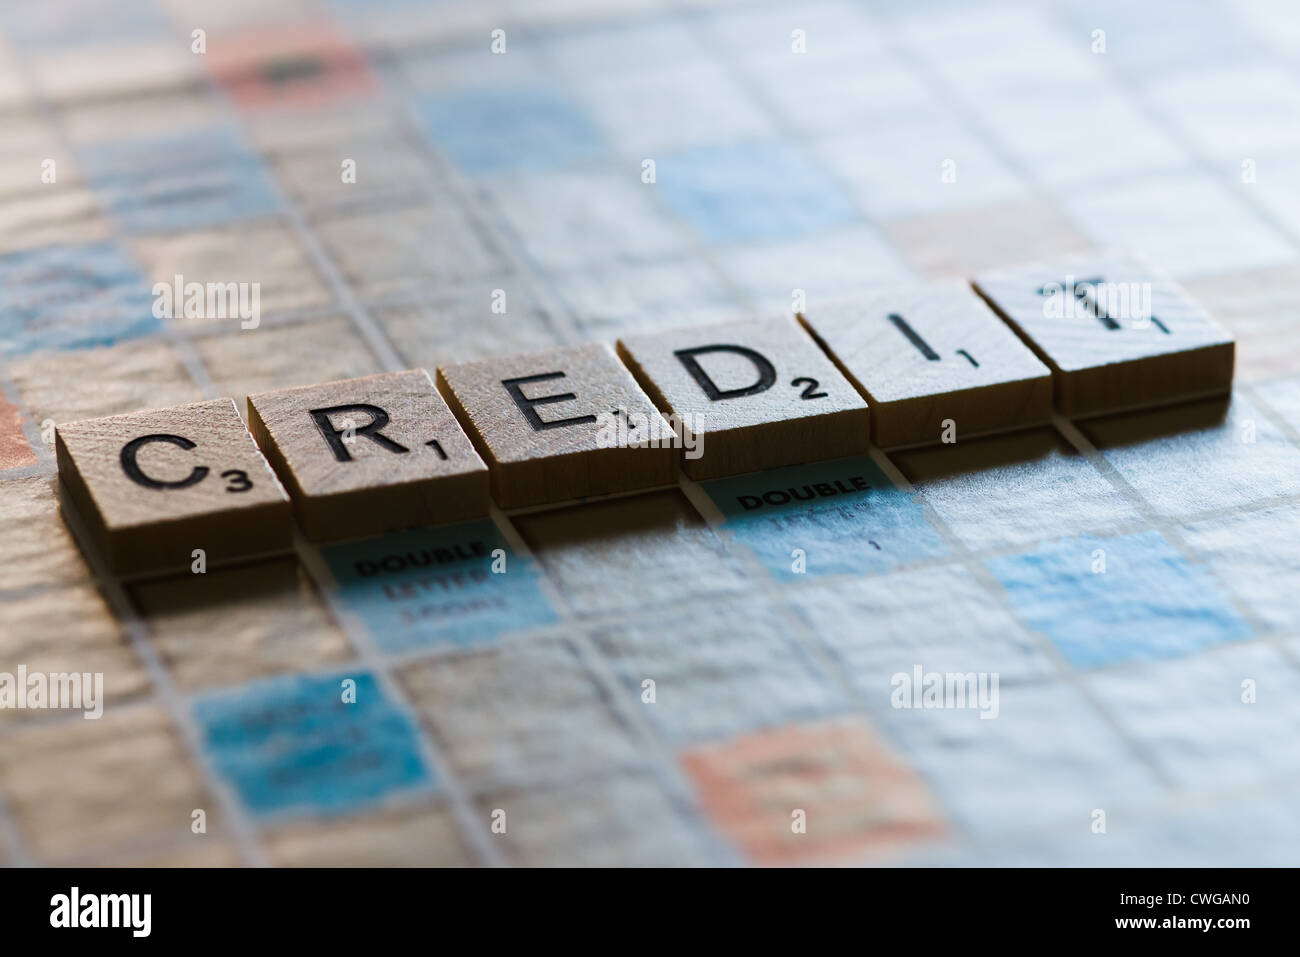 Letter tiles spelling the word CREDIT - Stock Image